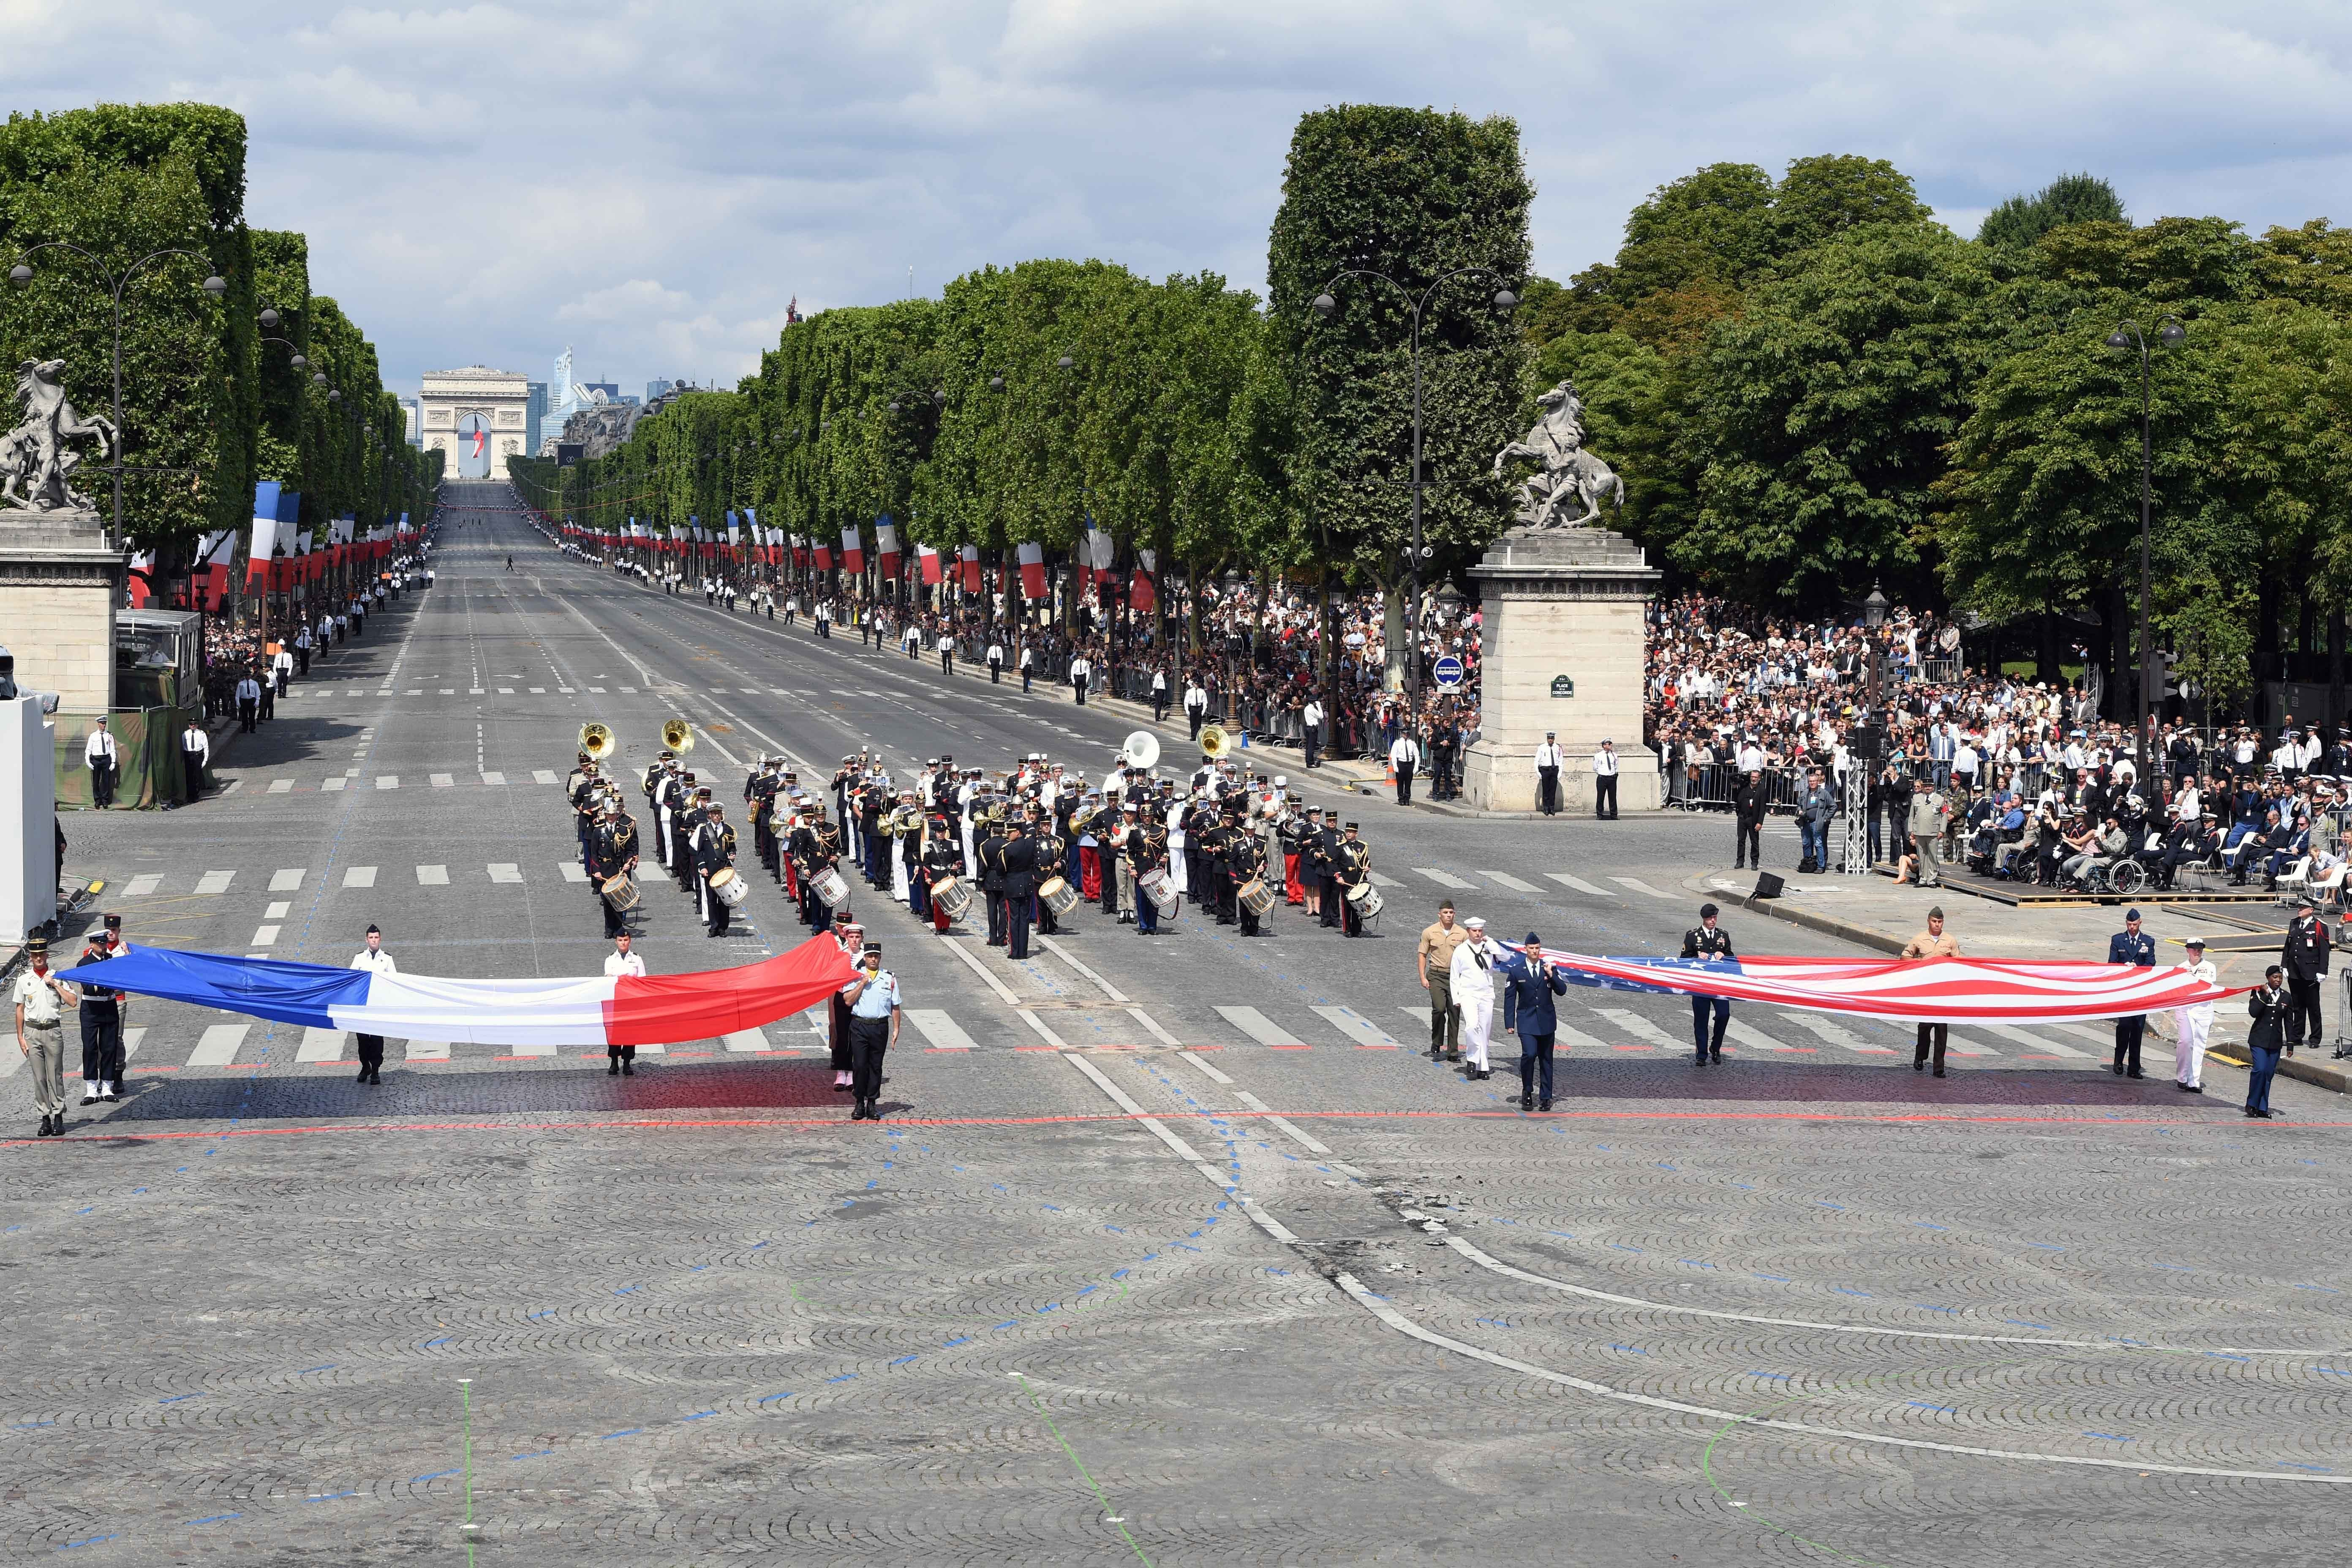 170714-N-AC979-495 PARIS (July 14, 2017) U.S. and French service members display each country's respective flag during the Military Parade on Bastille Day. An historic first, the U.S. led the parade as the country of honor this year in commemoration of the centennial of U.S. entry into World War I and the long-standing partnership between France and the U.S. (U.S. Navy photo by Chief Mass Communication Specialist Michael McNabb/Released)